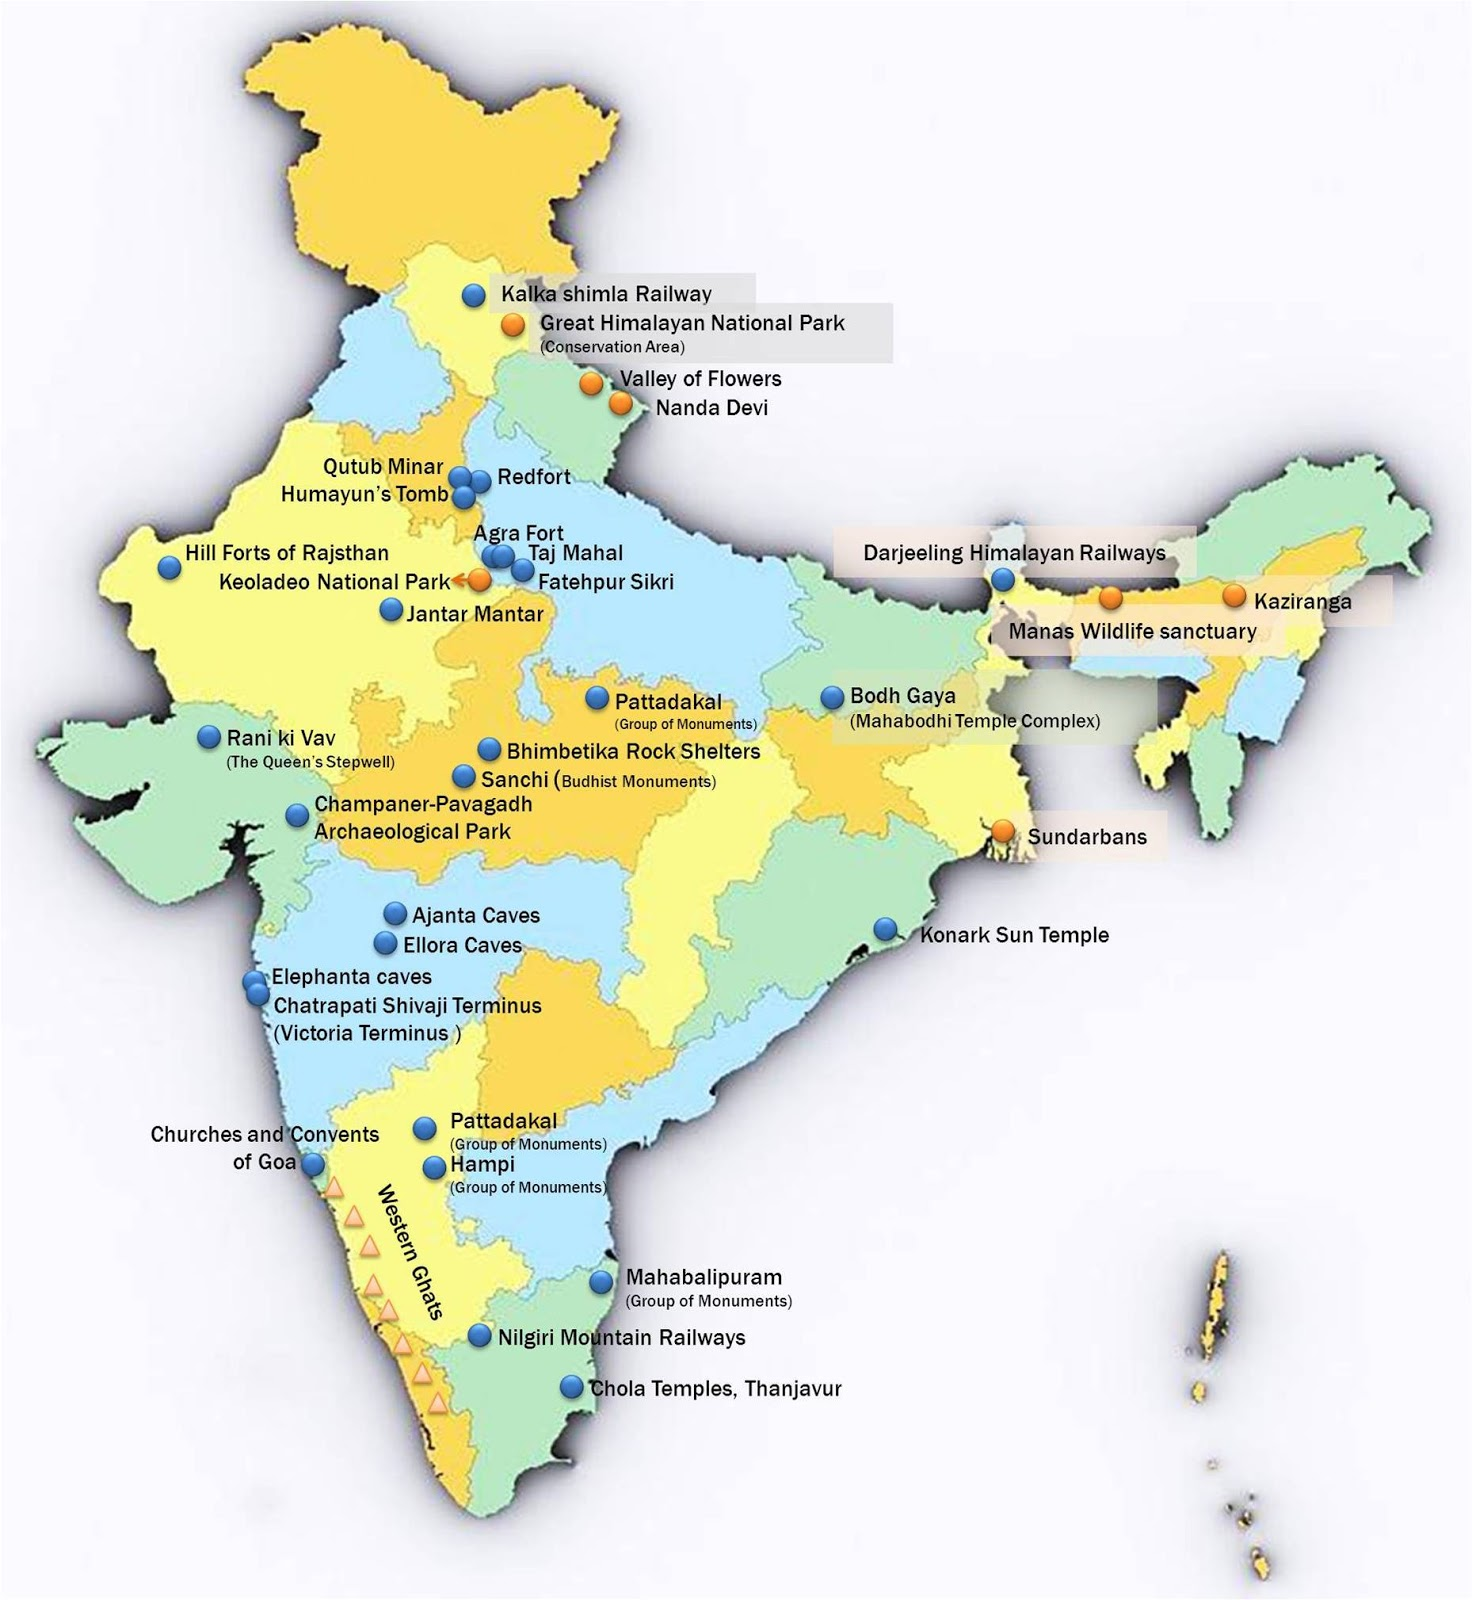 unesco world heritage site india map - HD 1472×1600